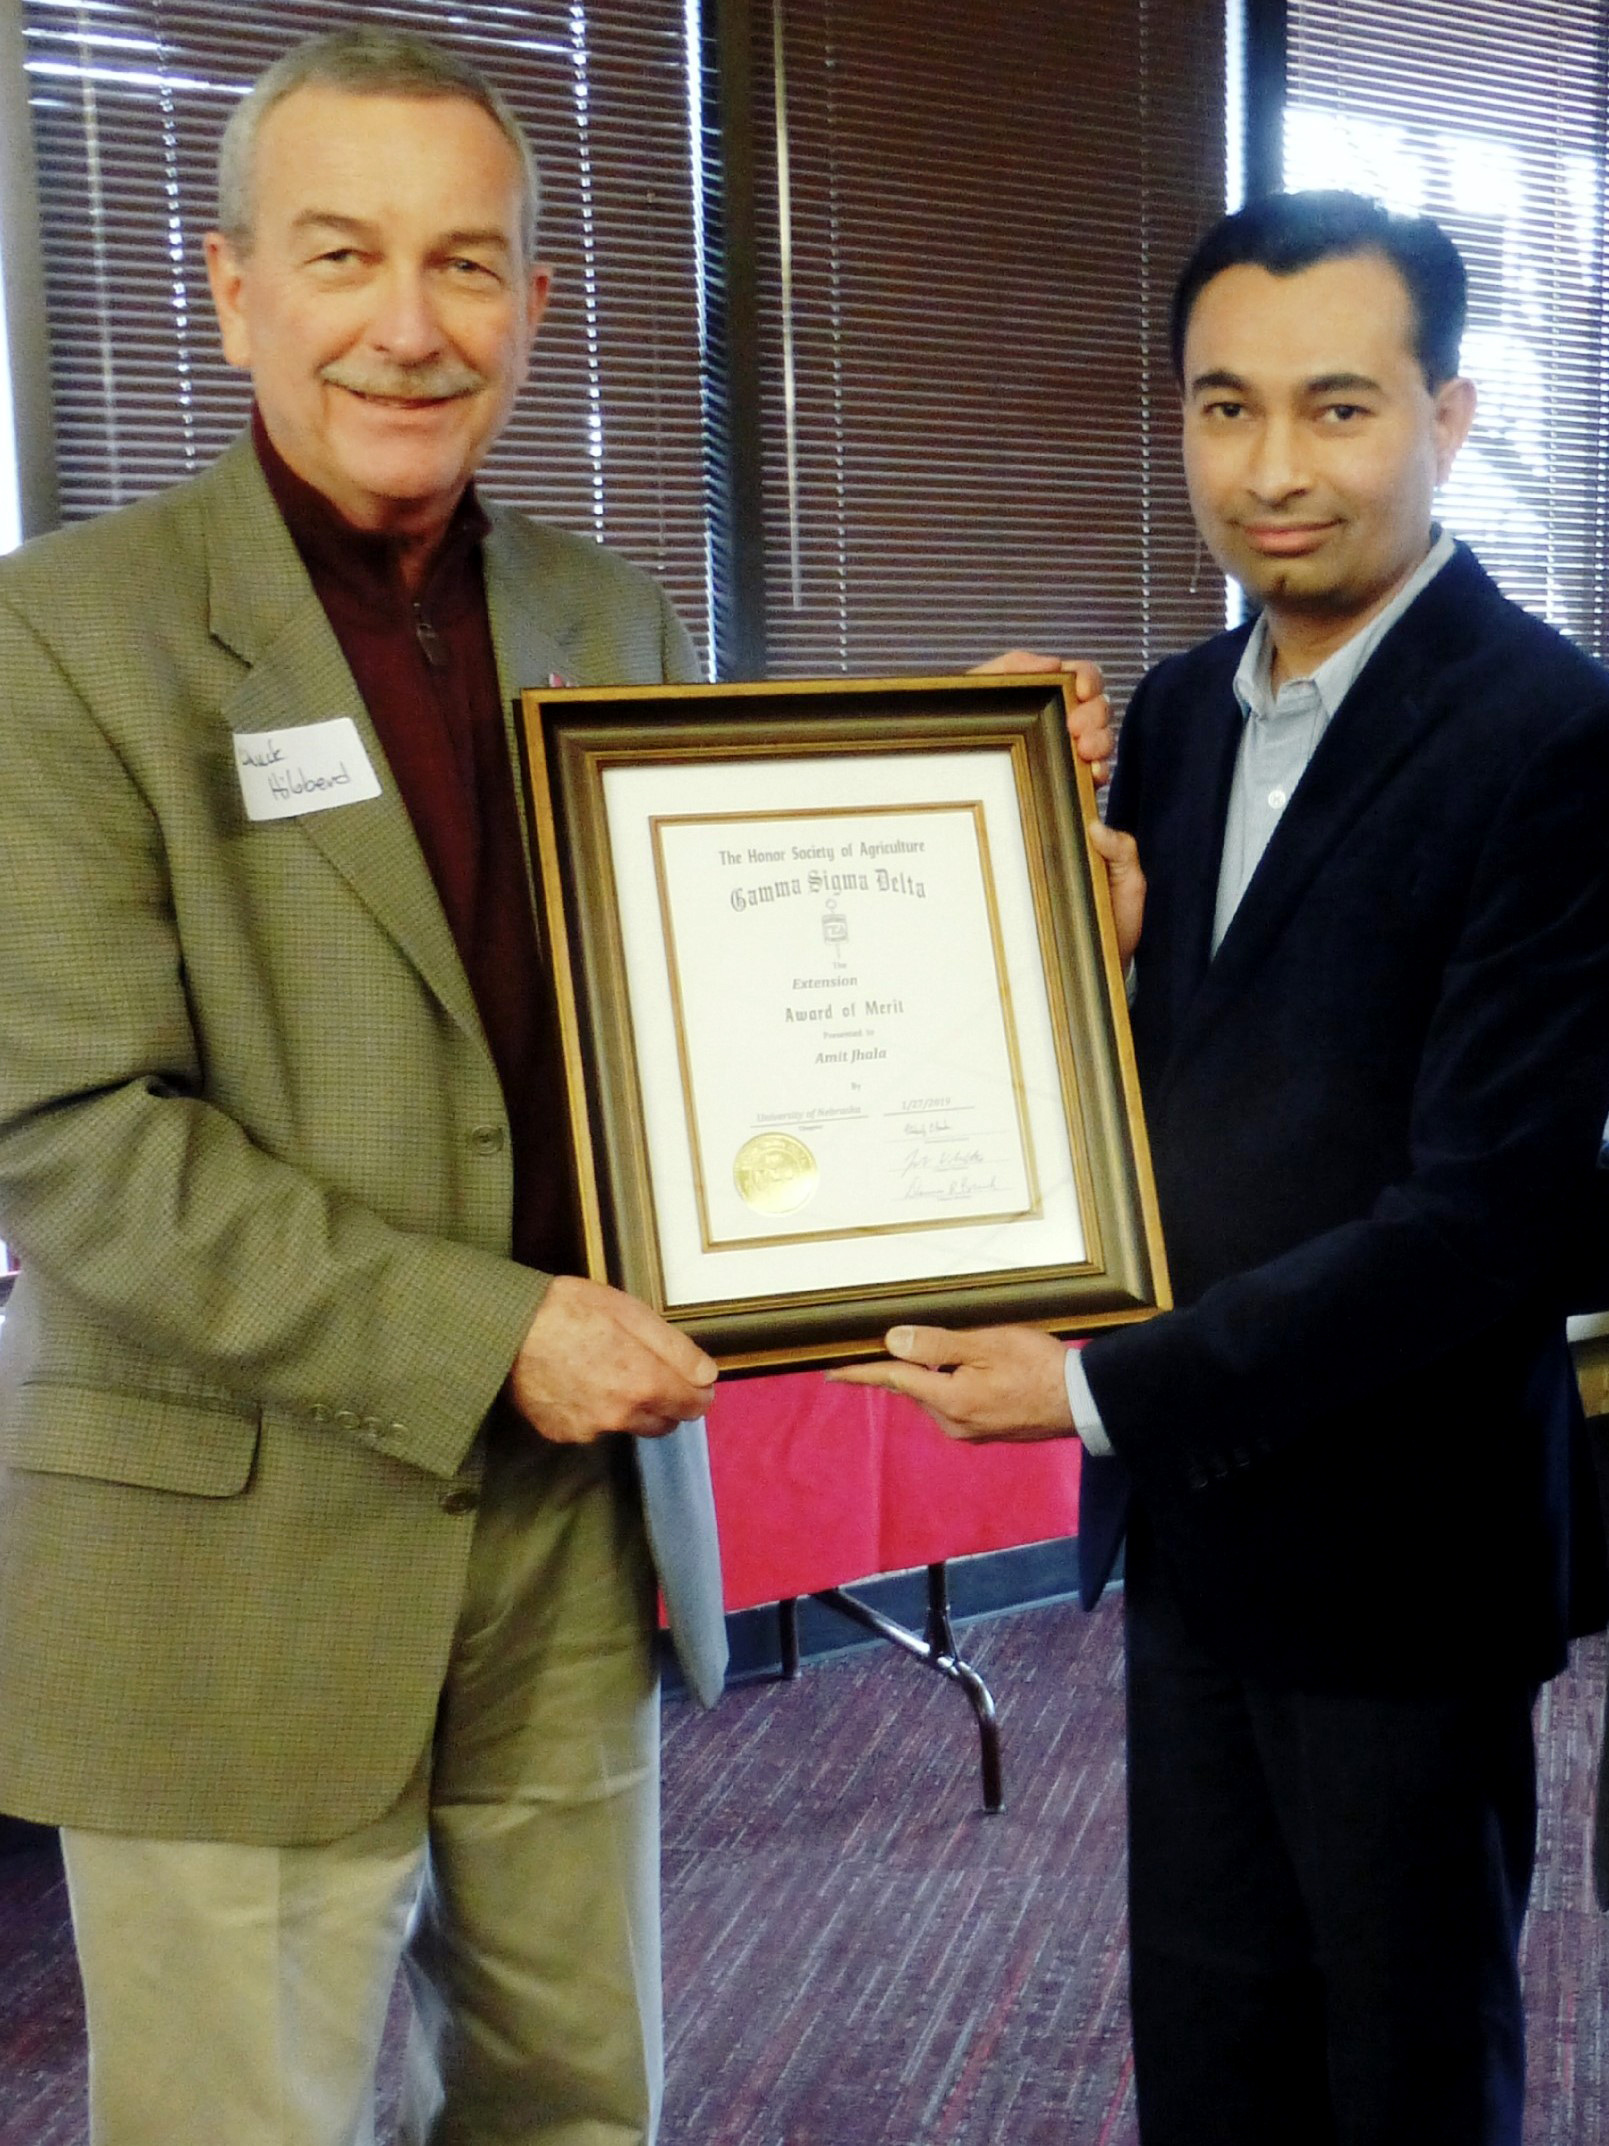 Chuck Hibberd presenting The Honor Society of Agriculture Gamma Sigma Delta Extension Award of Merit to Amit Jhala.